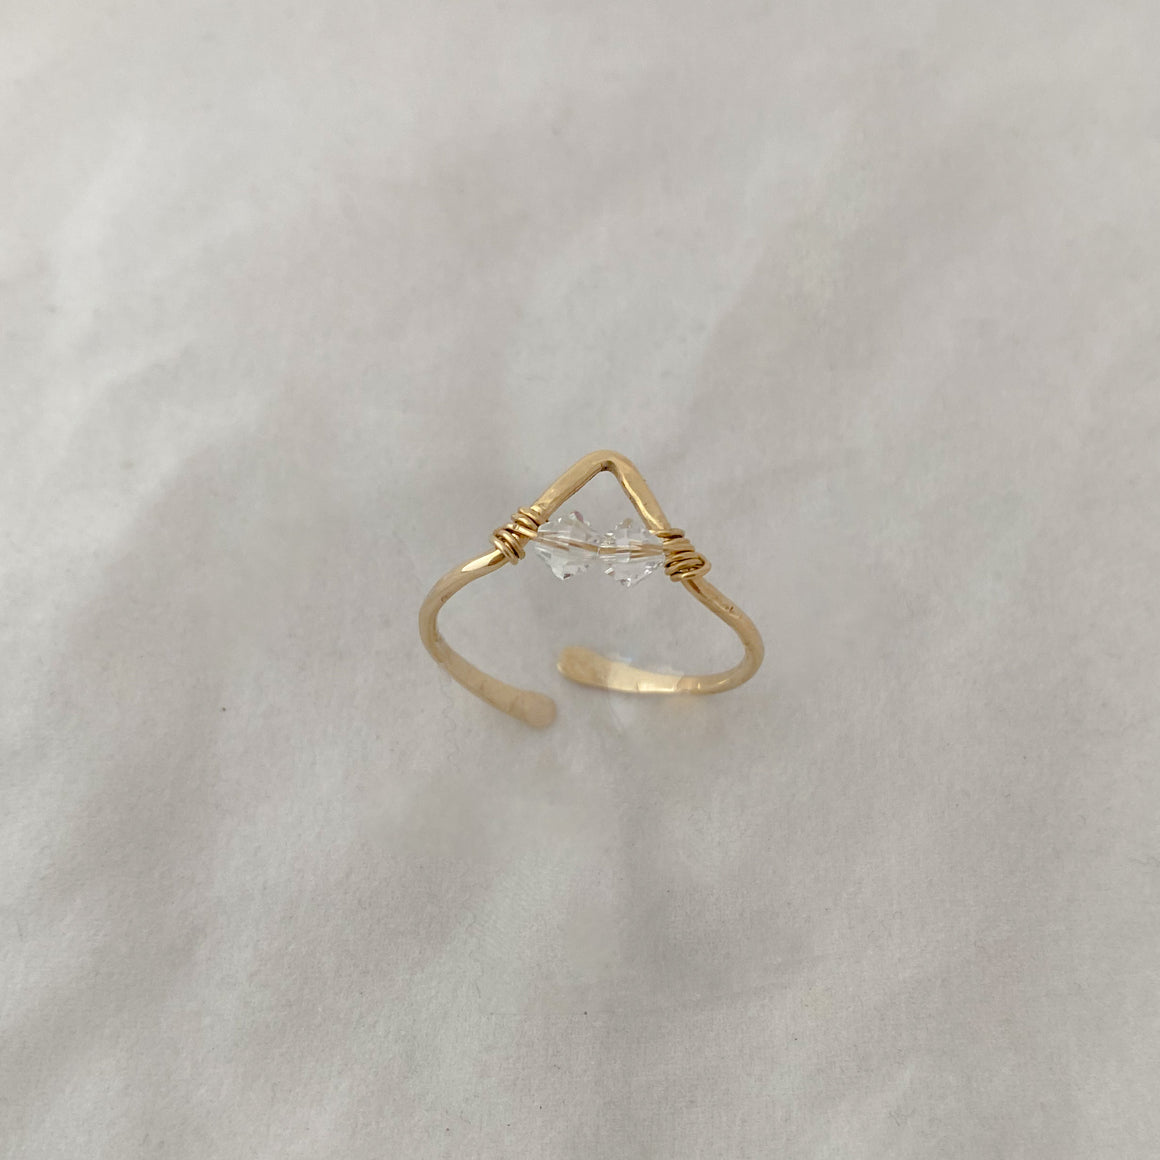 Sparkle chevron ring adjustable band